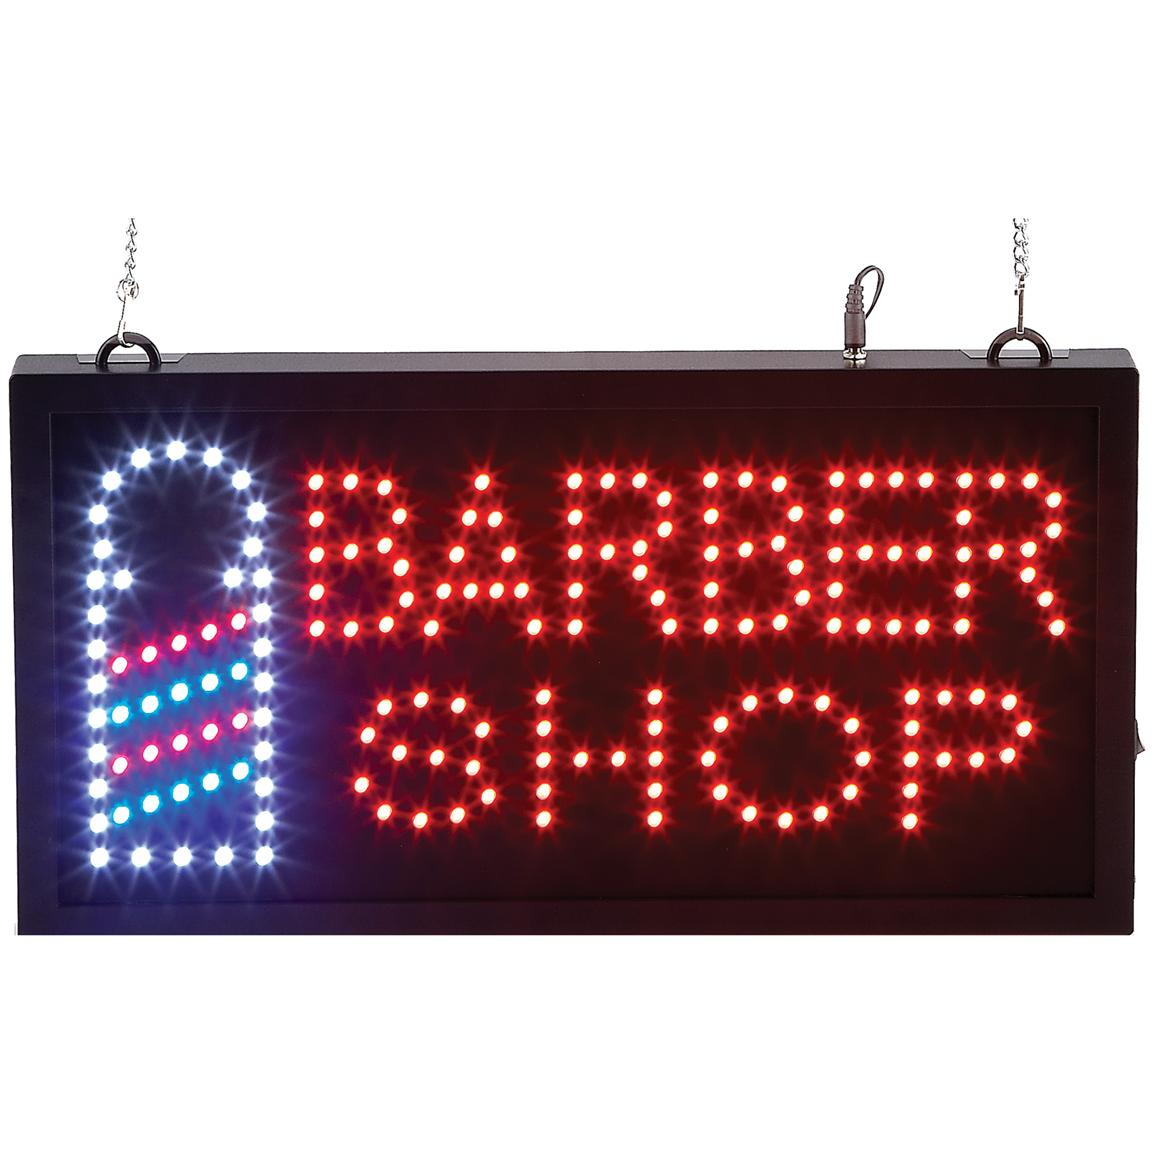 Mitkati-Japan™ Barber Shop Programmed LED Sign